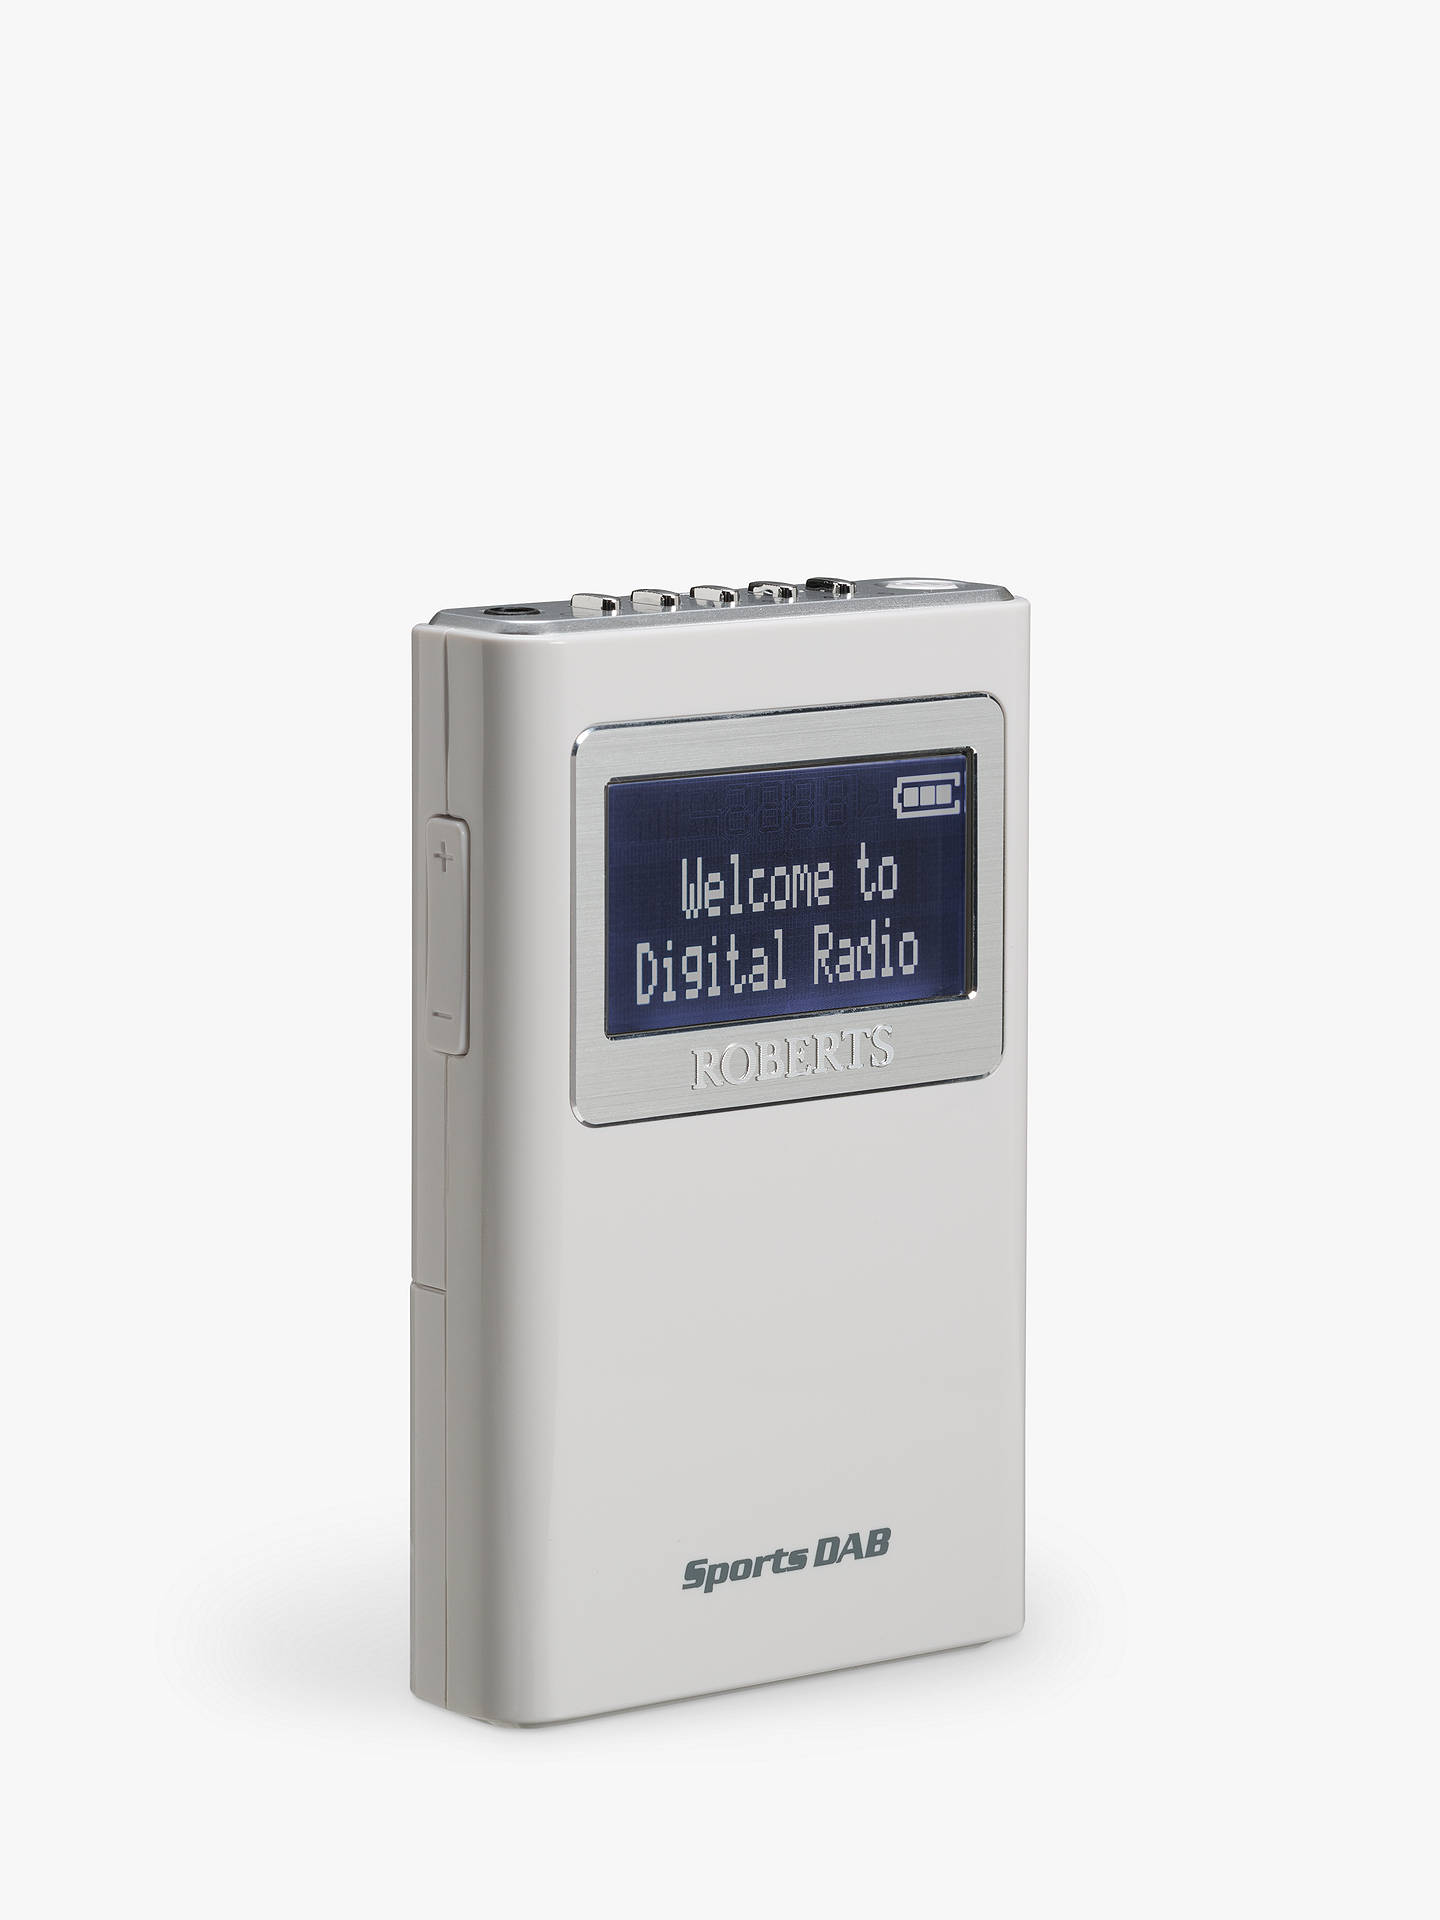 Buy ROBERTS Sports DAB 5 Personal Stereo Radio Online at johnlewis.com